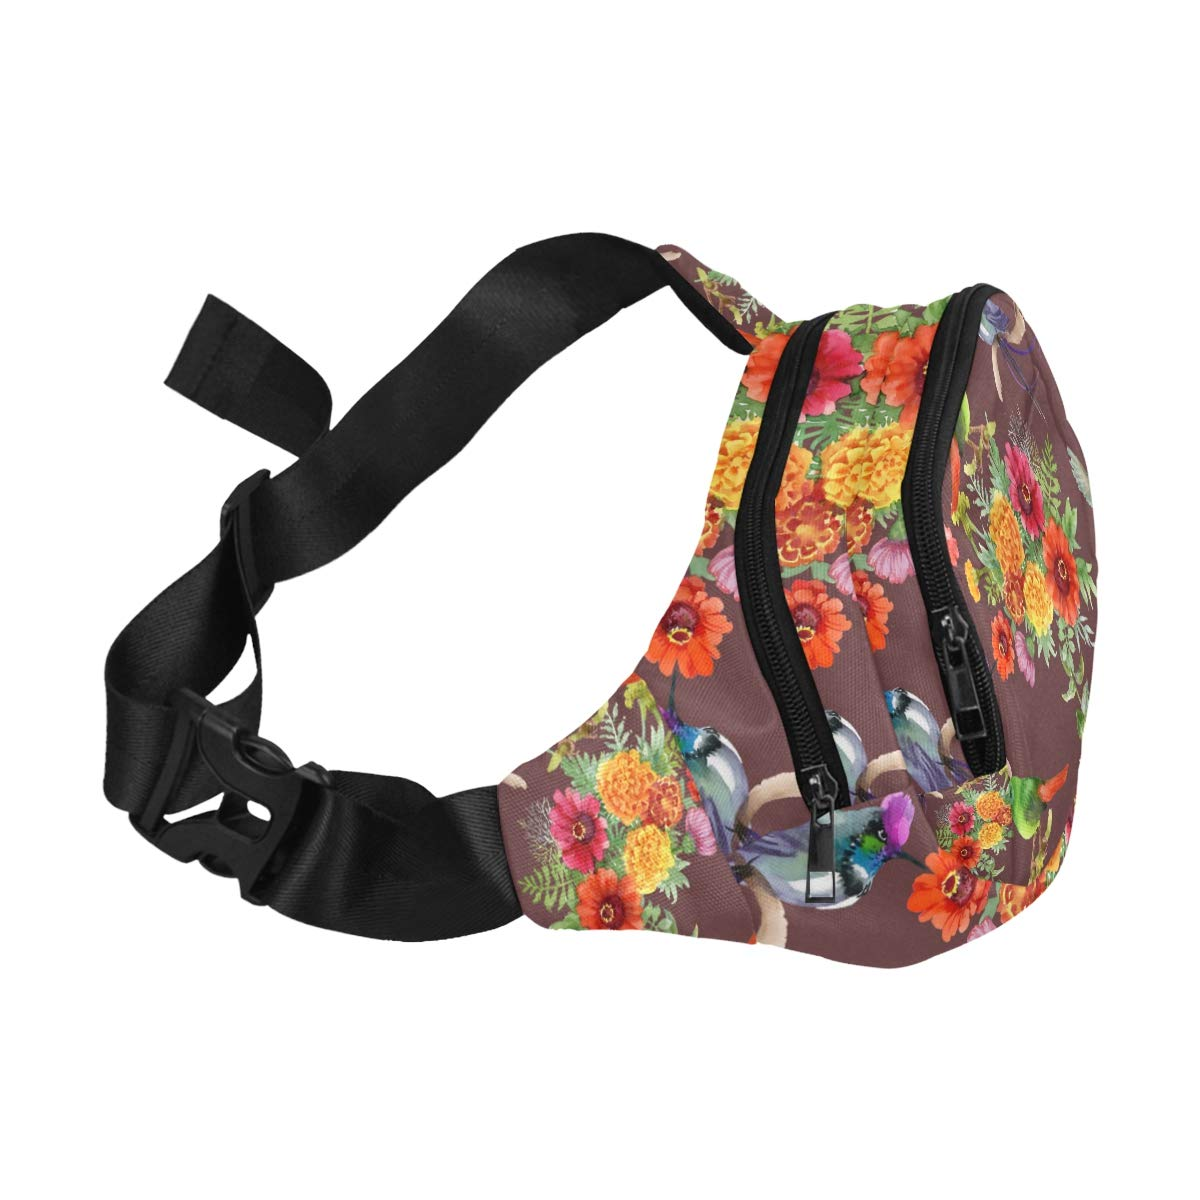 Colorful Watercolor Flowers And Birds Fenny Packs Waist Bags Adjustable Belt Waterproof Nylon Travel Running Sport Vacation Party For Men Women Boys Girls Kids